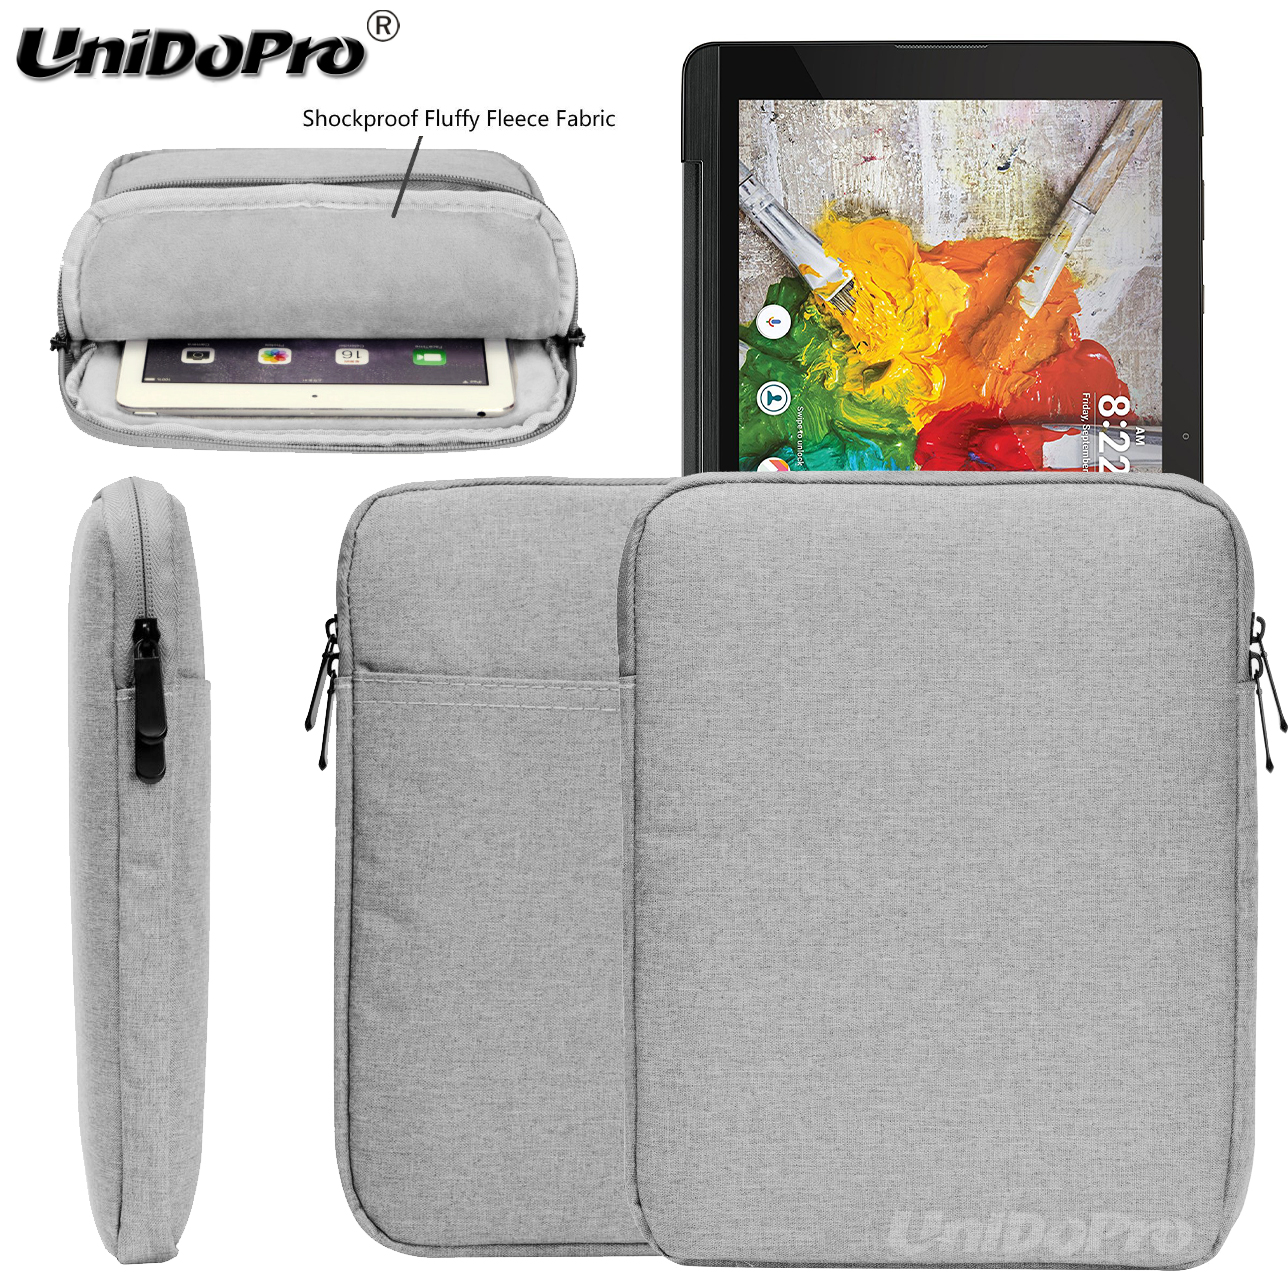 Unidopro New & Casual Waterproof Pouch <font><b>Case</b></font> for LG G Pad 10.1 <font><b>V700</b></font> Tablet Conque Protective Travel Sleeve Zipper Bag Cover image